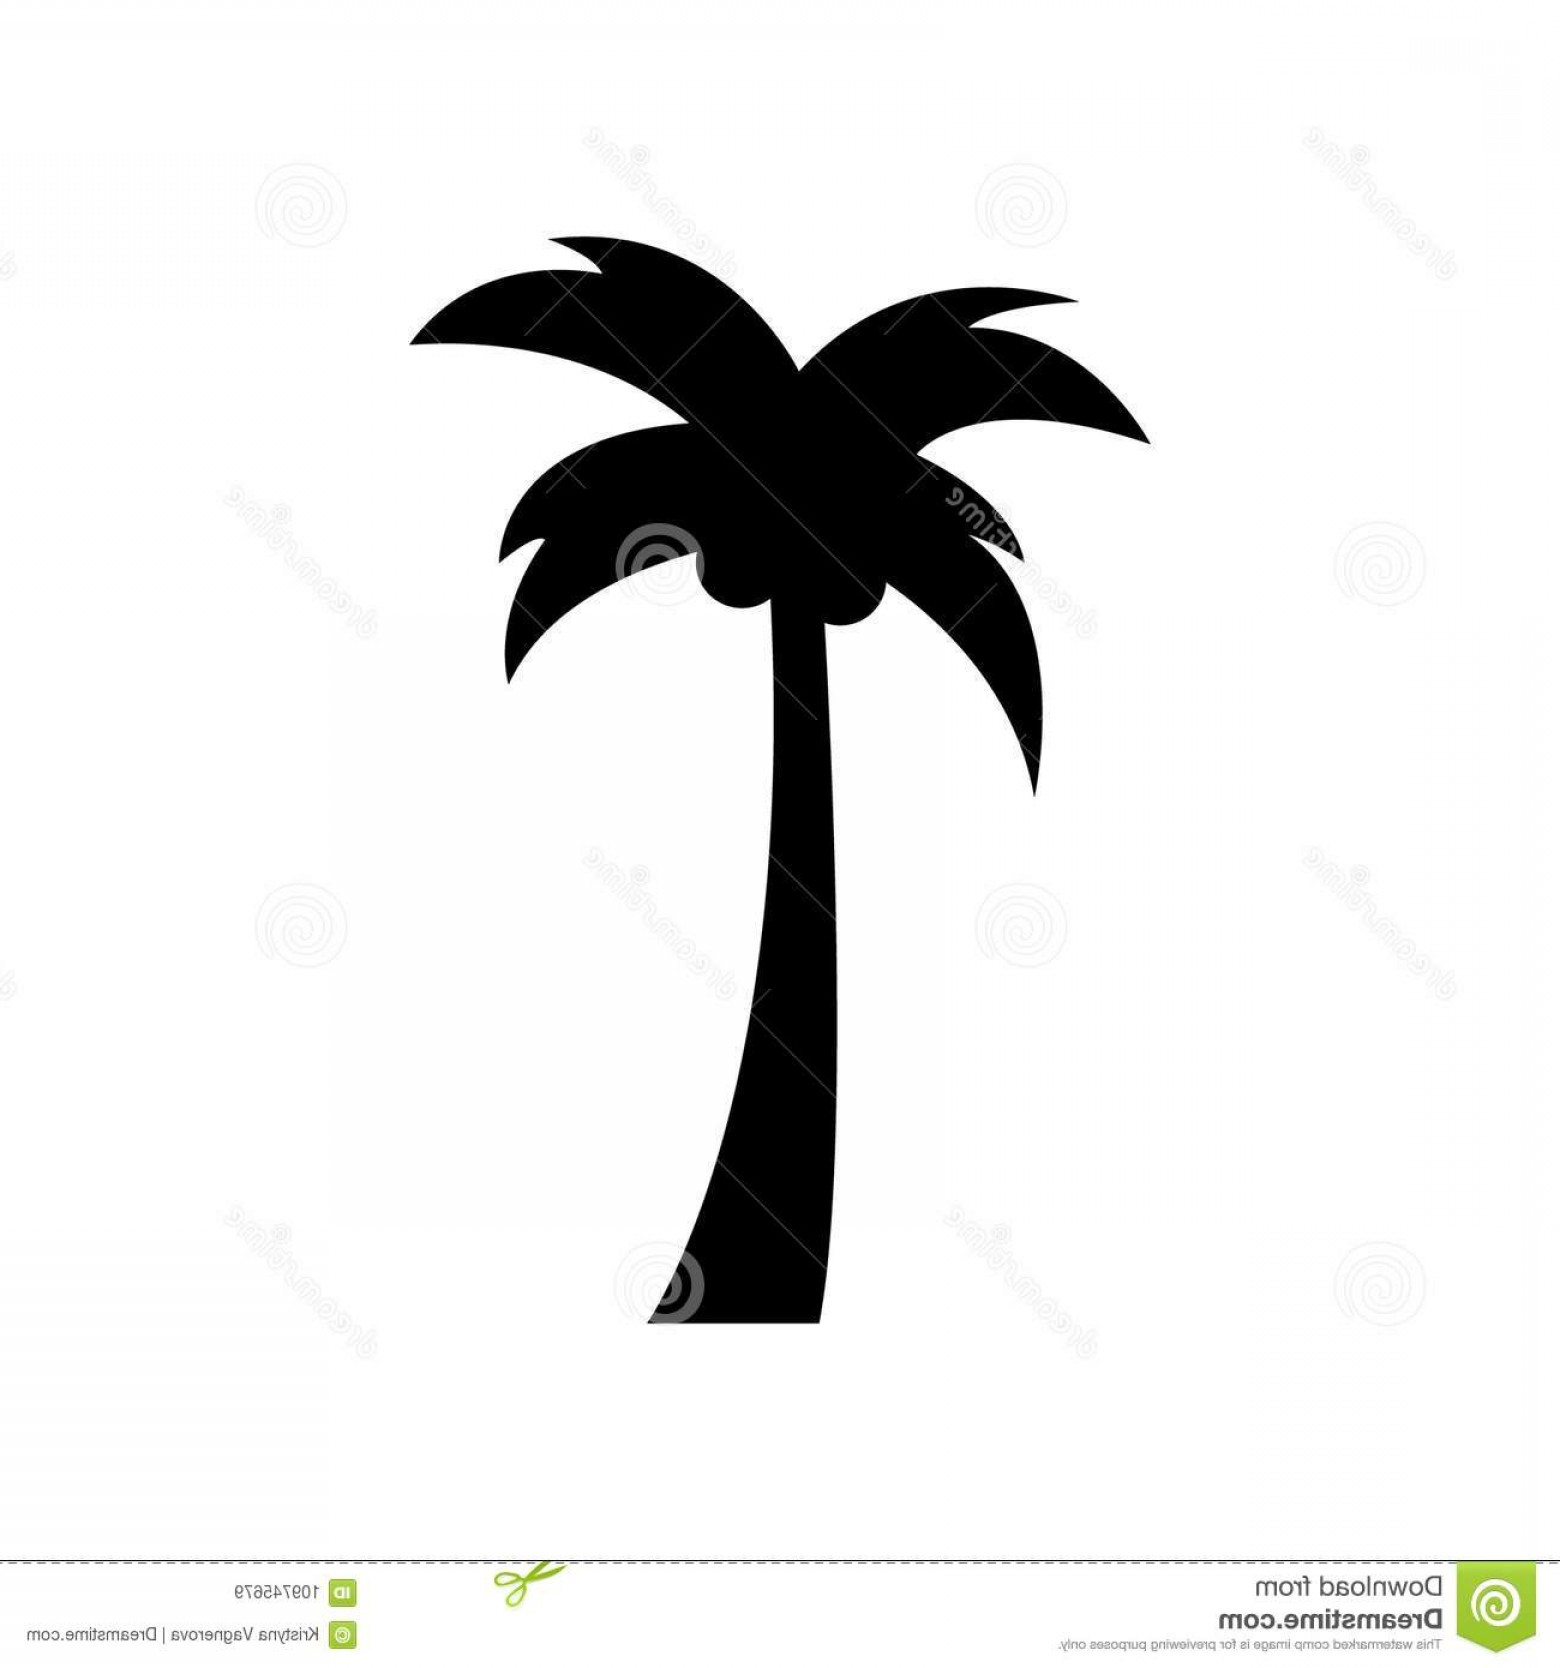 Simple Palm Tree Vector: Simple Palm Tree Black Vector Icon Isolated Tropical Coconut Graphic Illustration Image